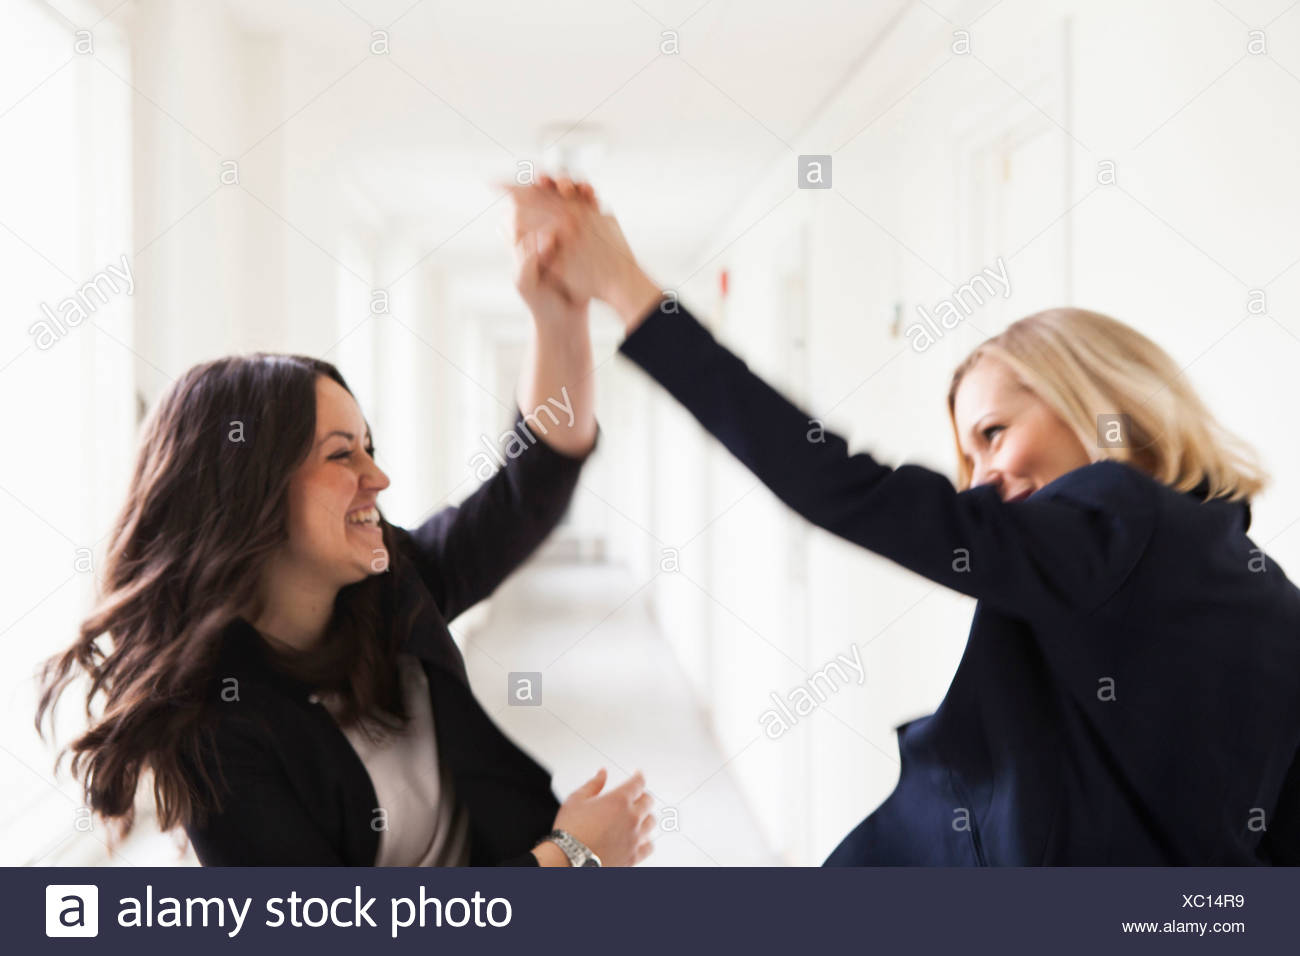 Successful businesswomen giving high-five in office - Stock Image